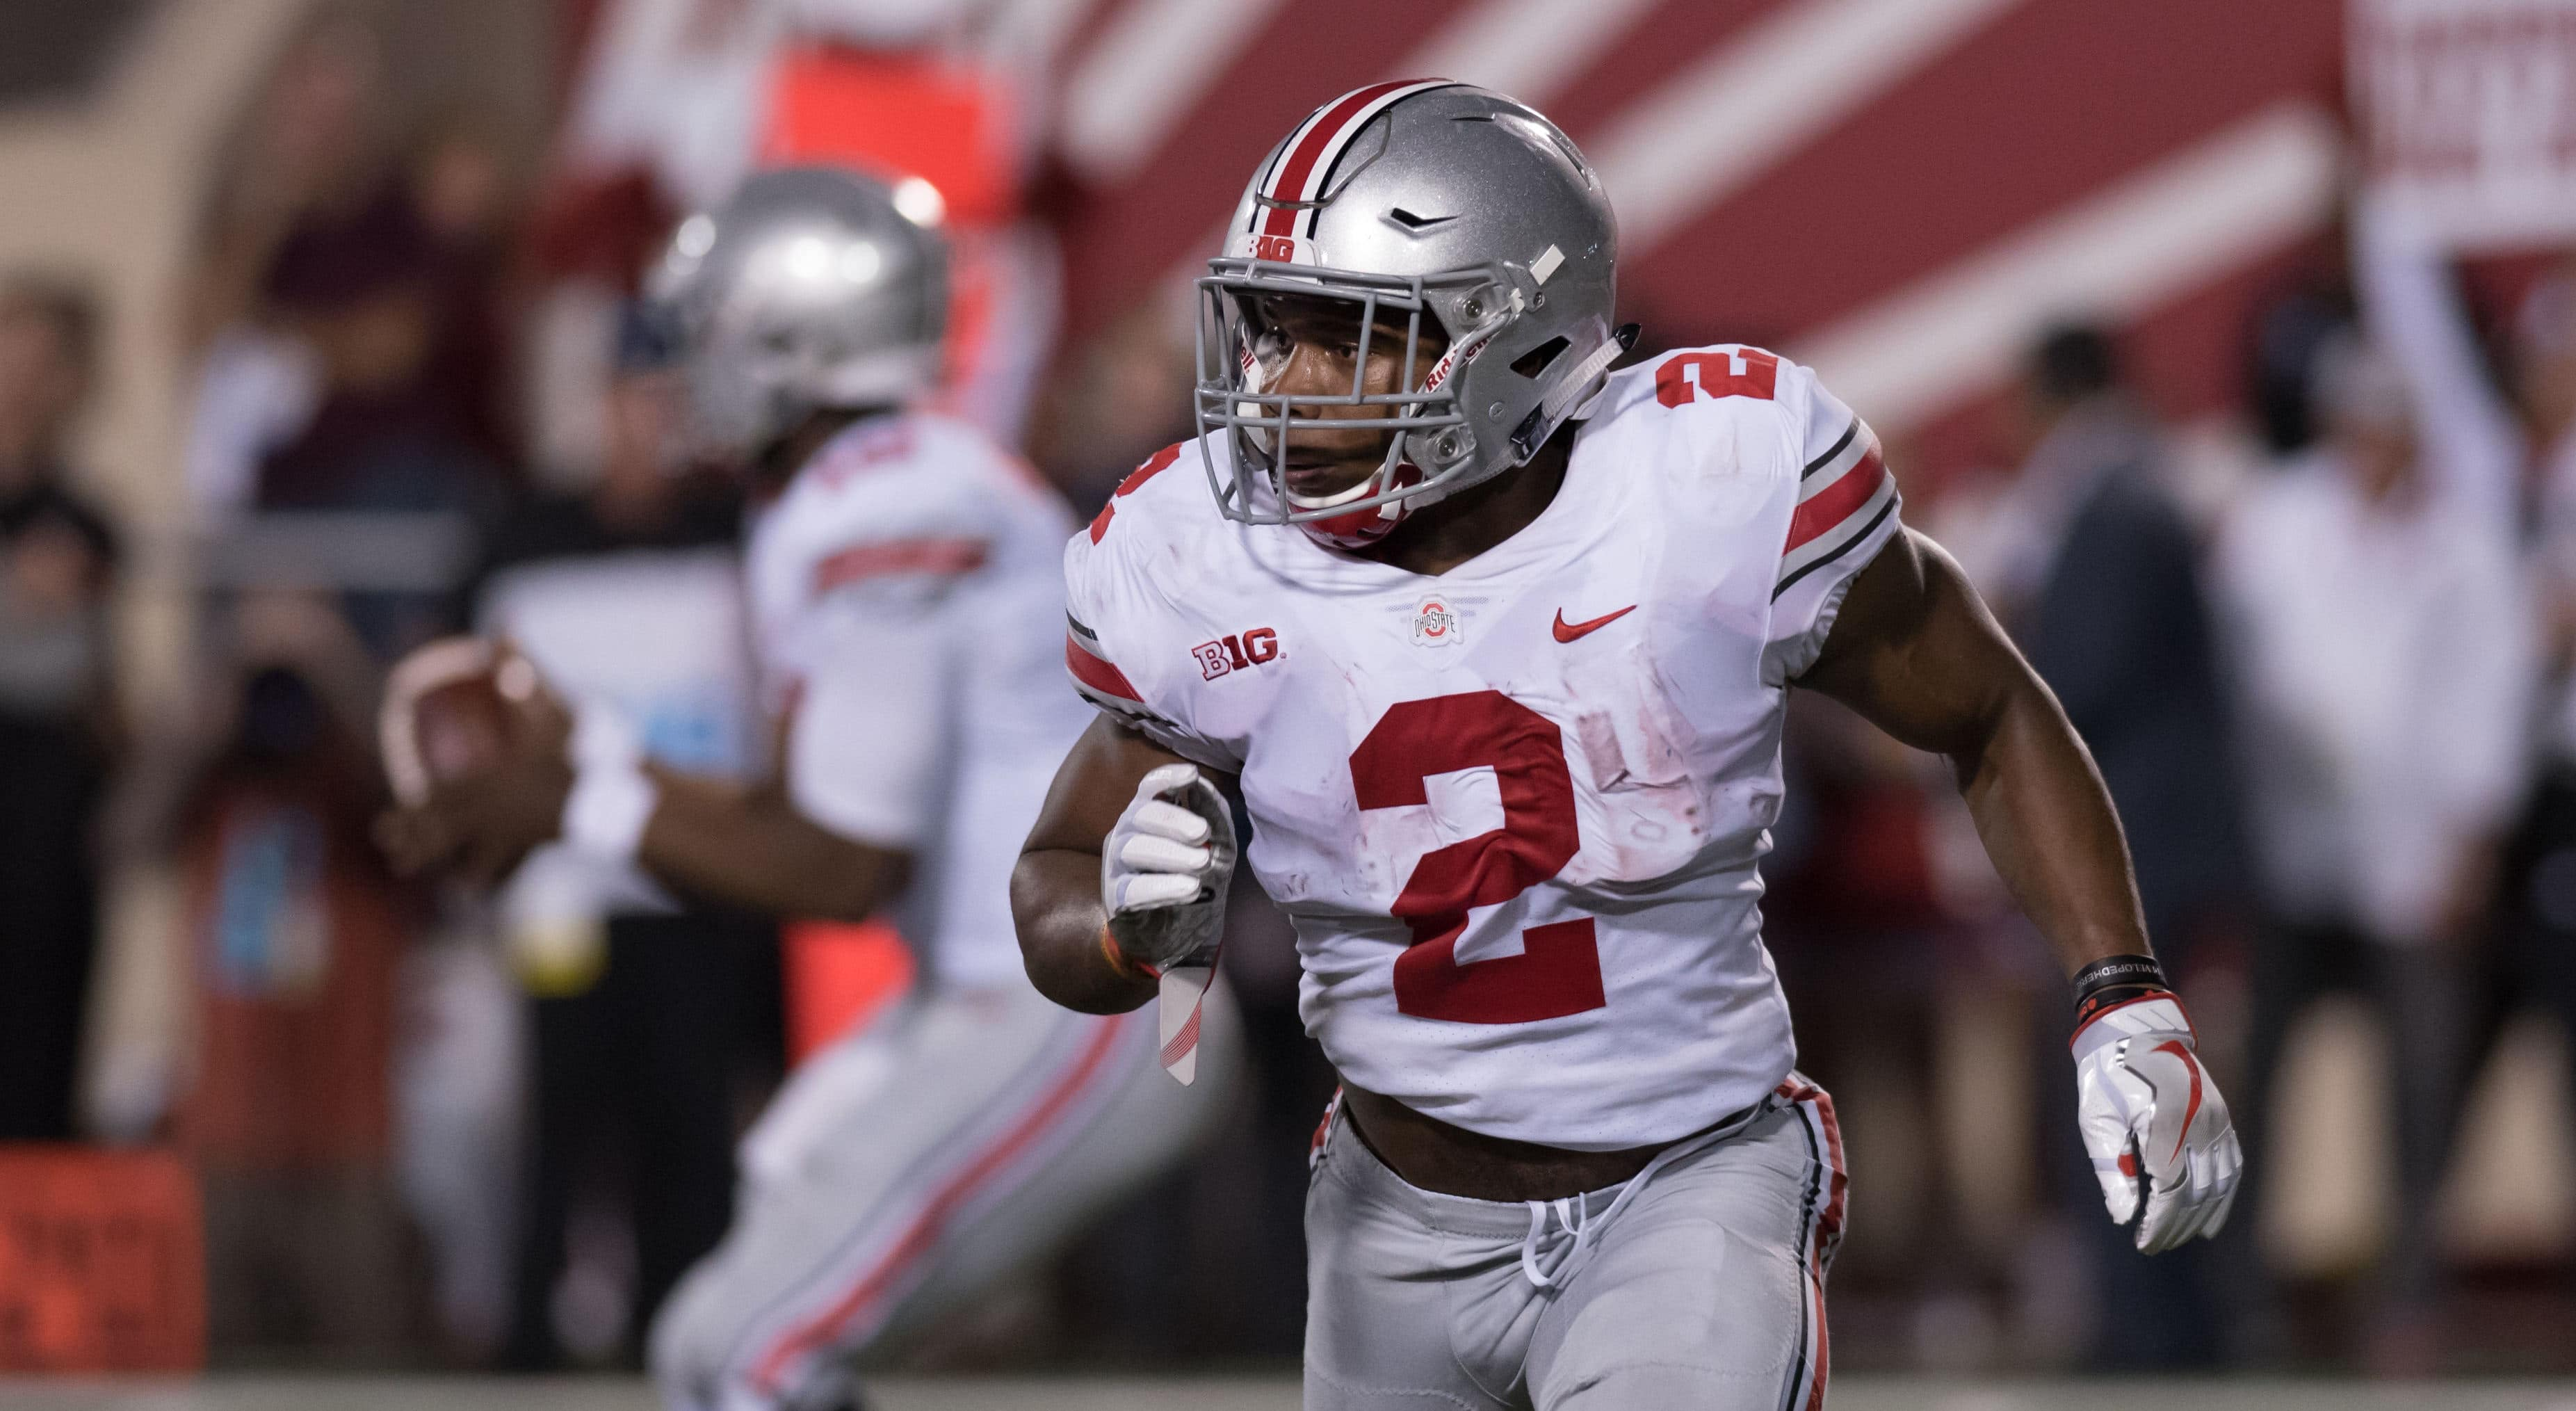 Five things to know about Ohio State